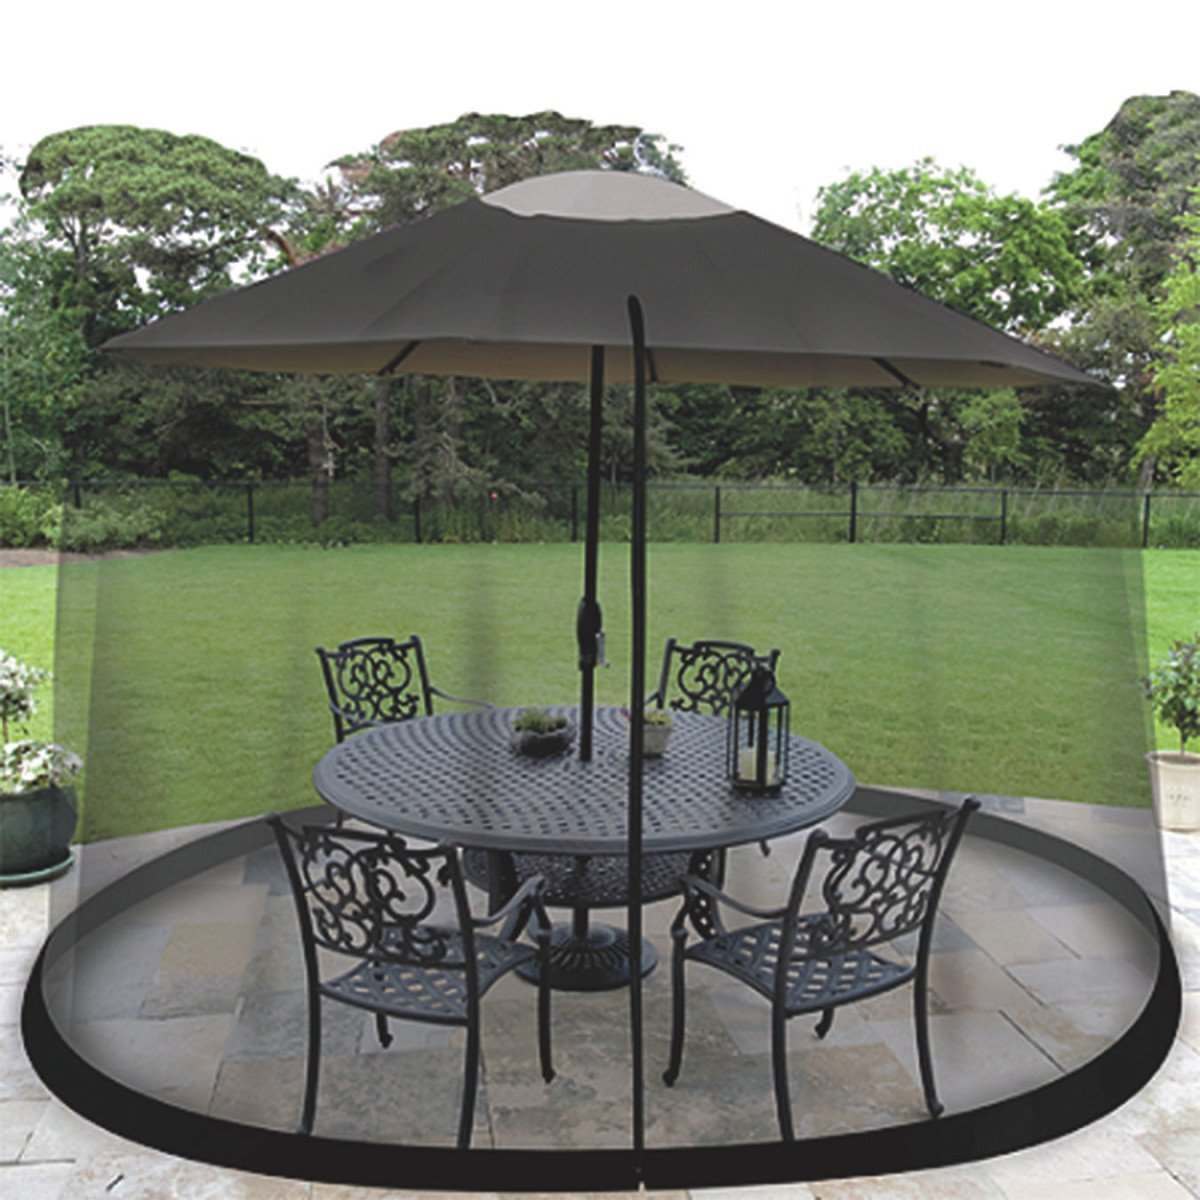 Etonnant Amazon.com : OceanTailer 9u0027 Umbrella Mosquito Net Canopy Patio Set Screen  Table Mesh : Garden U0026 Outdoor